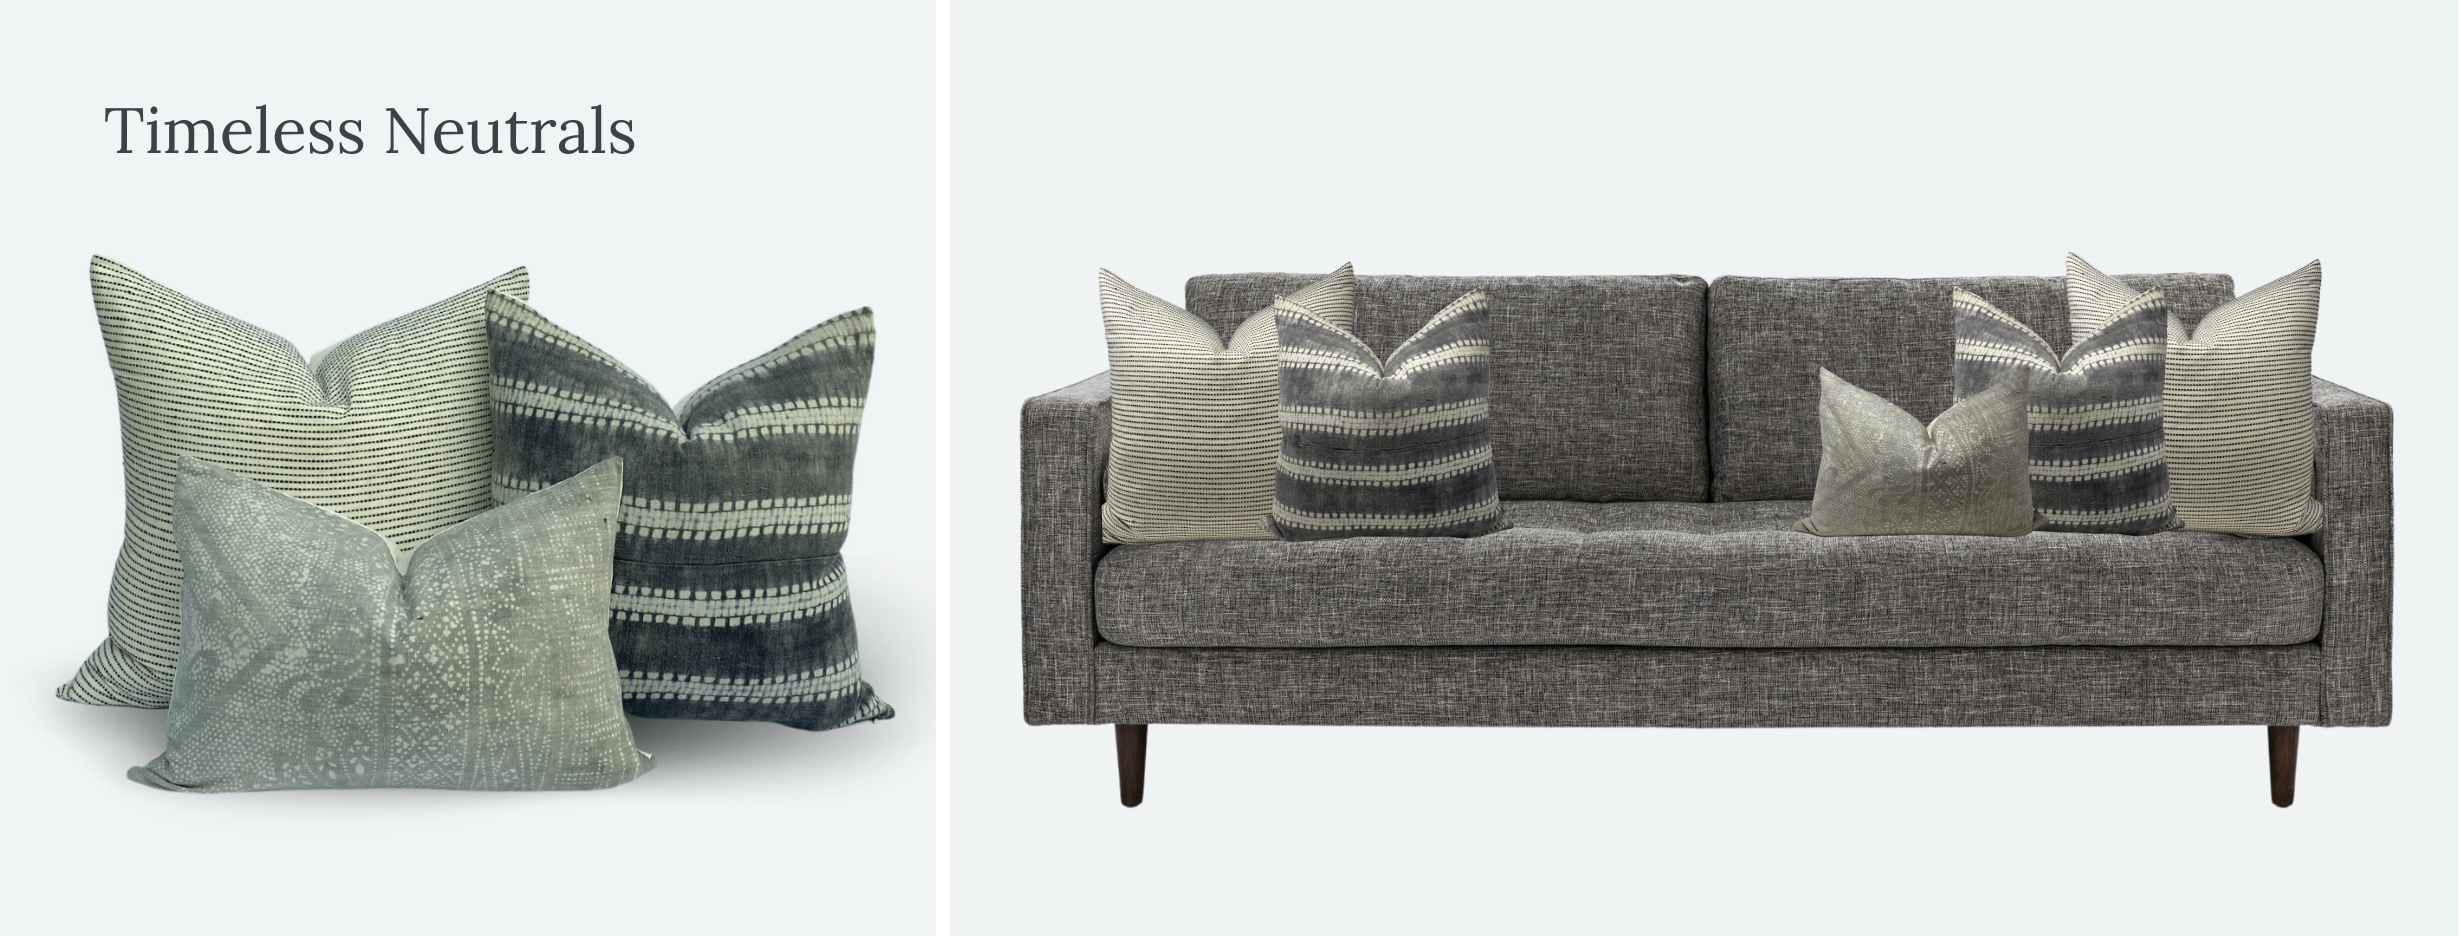 Everand throw timeless neutrals pillow styling on Article Sven sofa